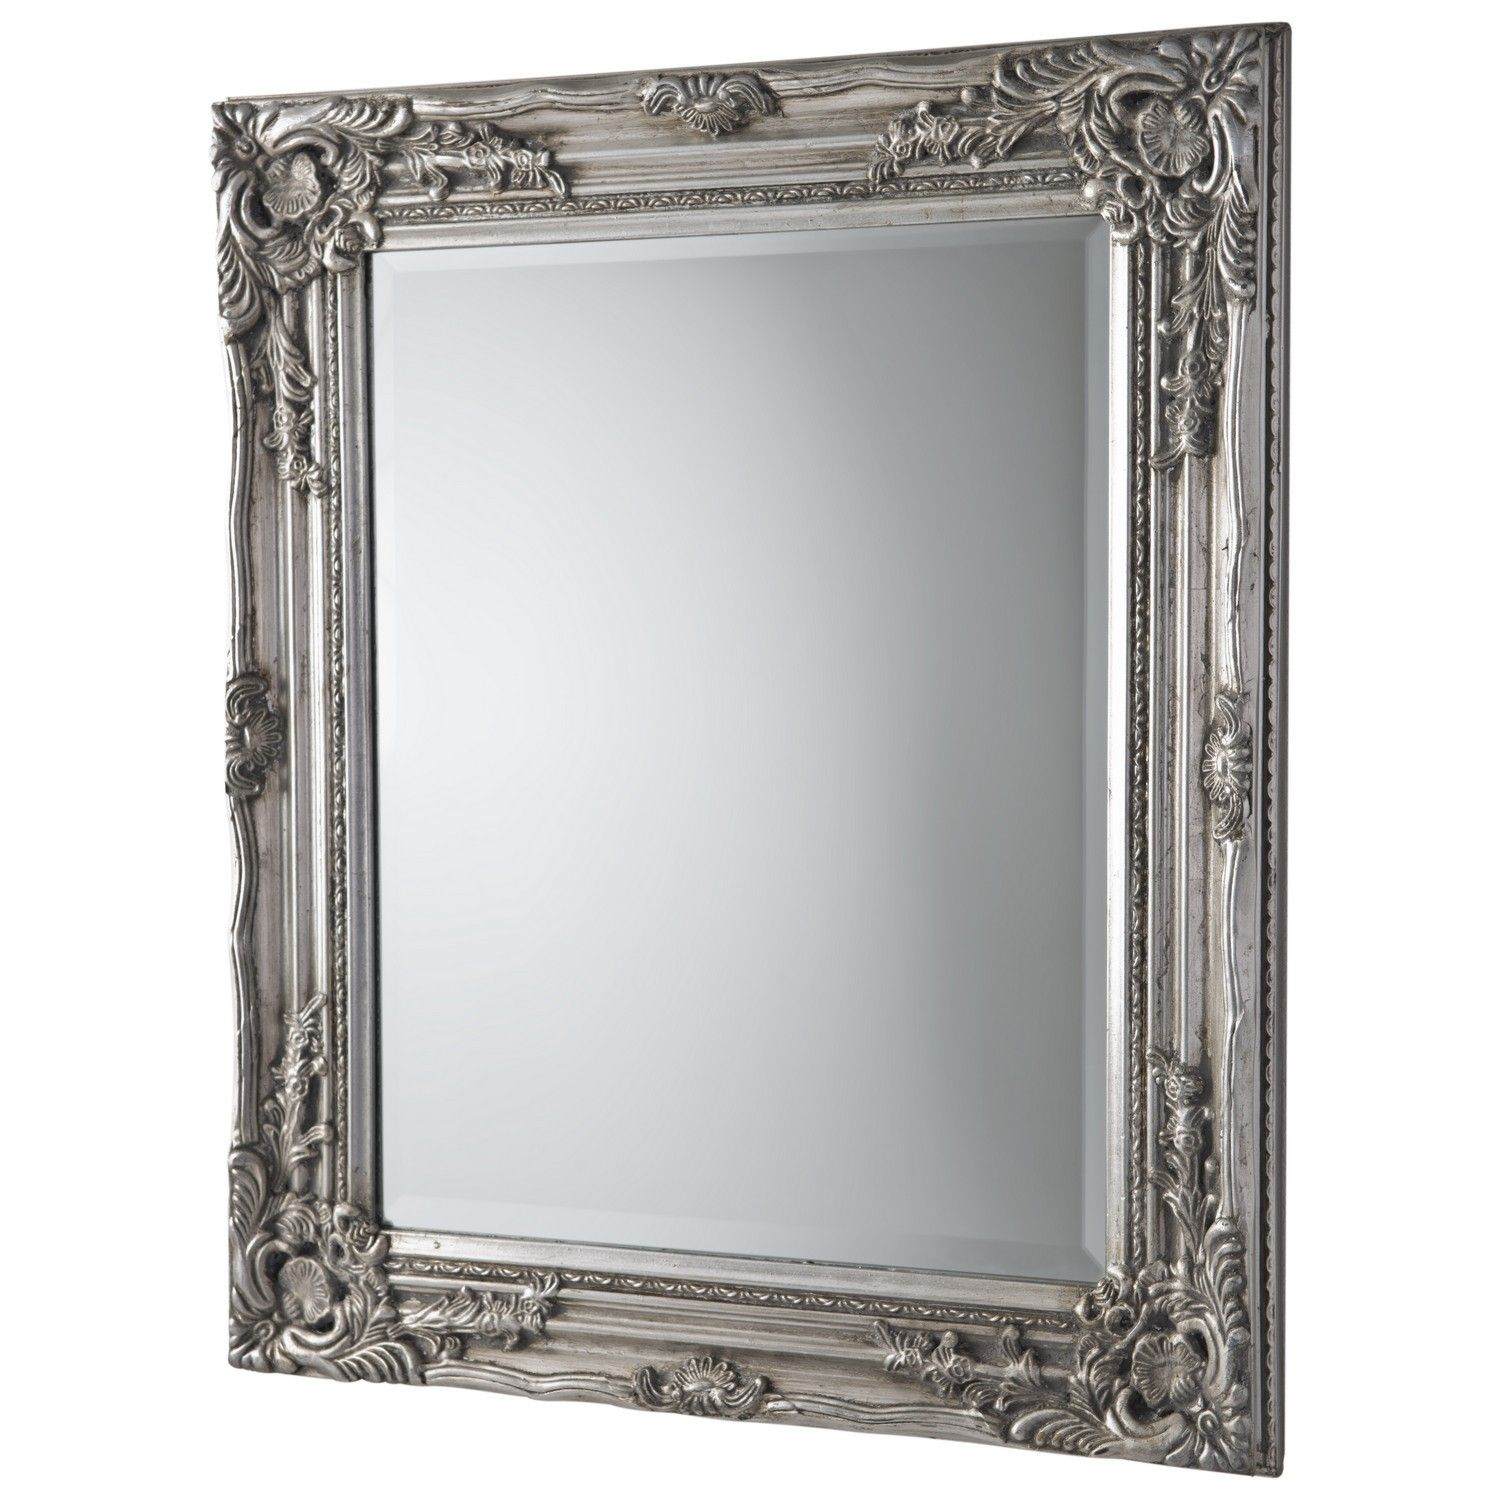 Pin On Painted Frame Mirrors